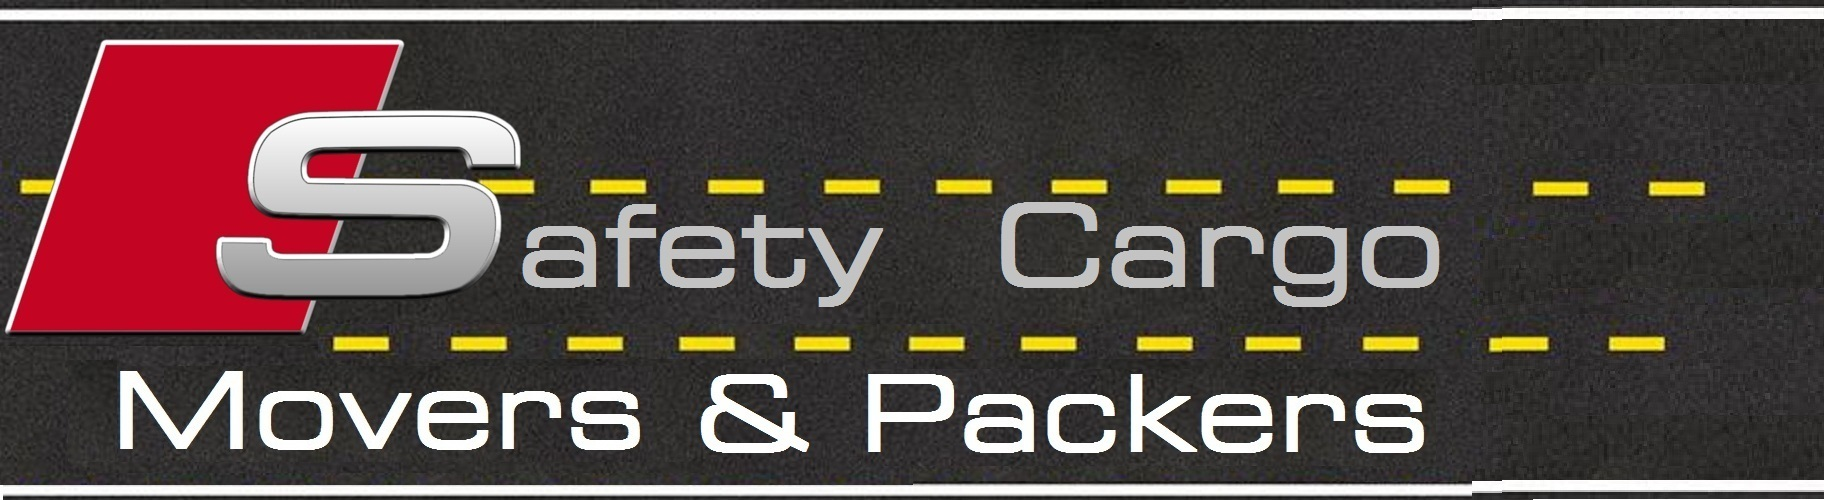 Safety Cargo Movers and Packers Image